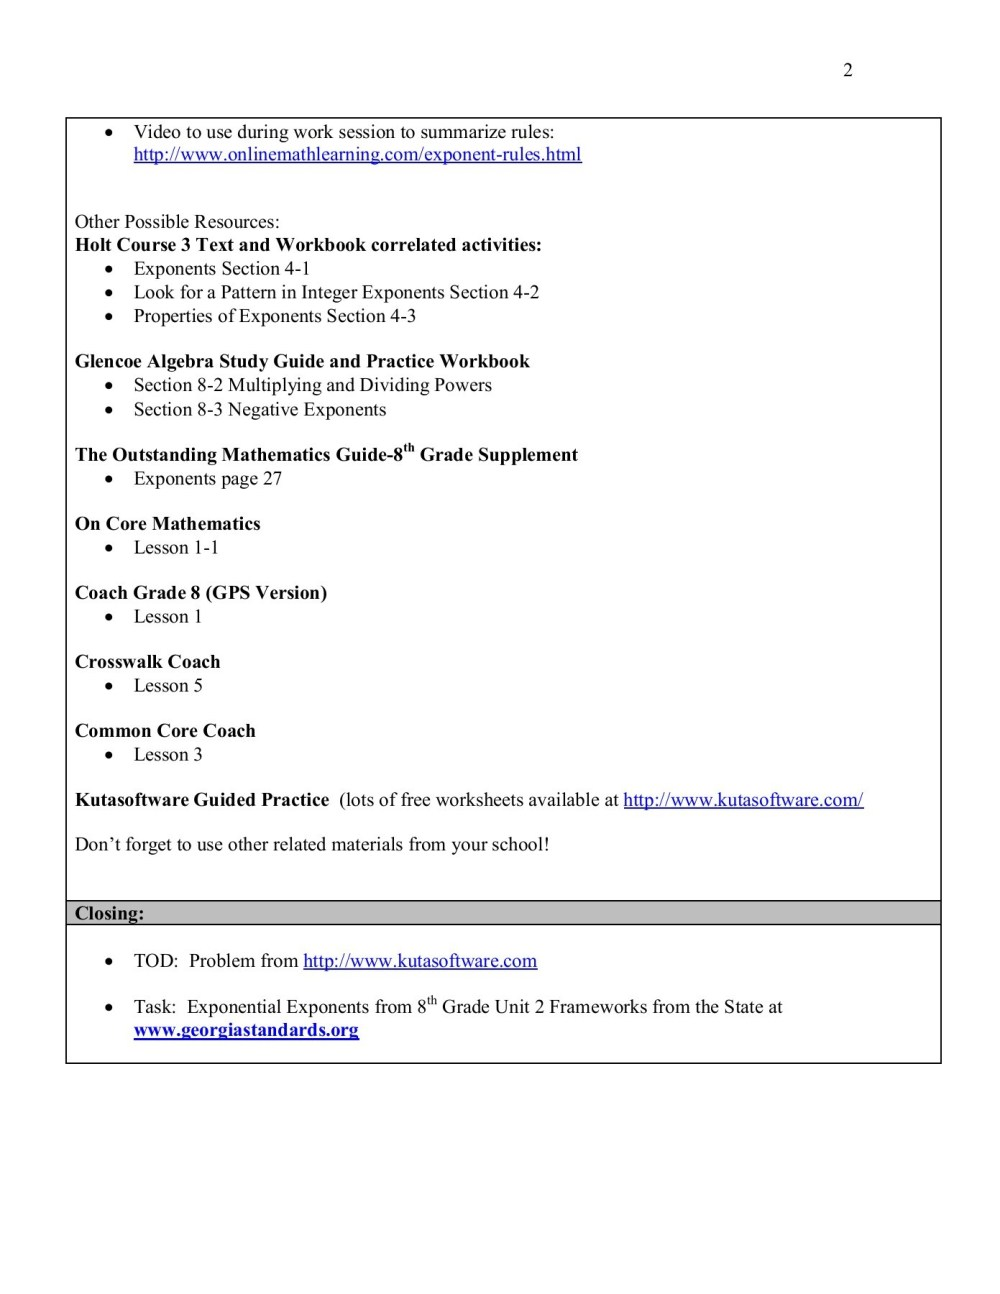 medium resolution of Evidence of Learning - Thomas County Schools Pages 1 - 12 - Flip PDF  Download   FlipHTML5